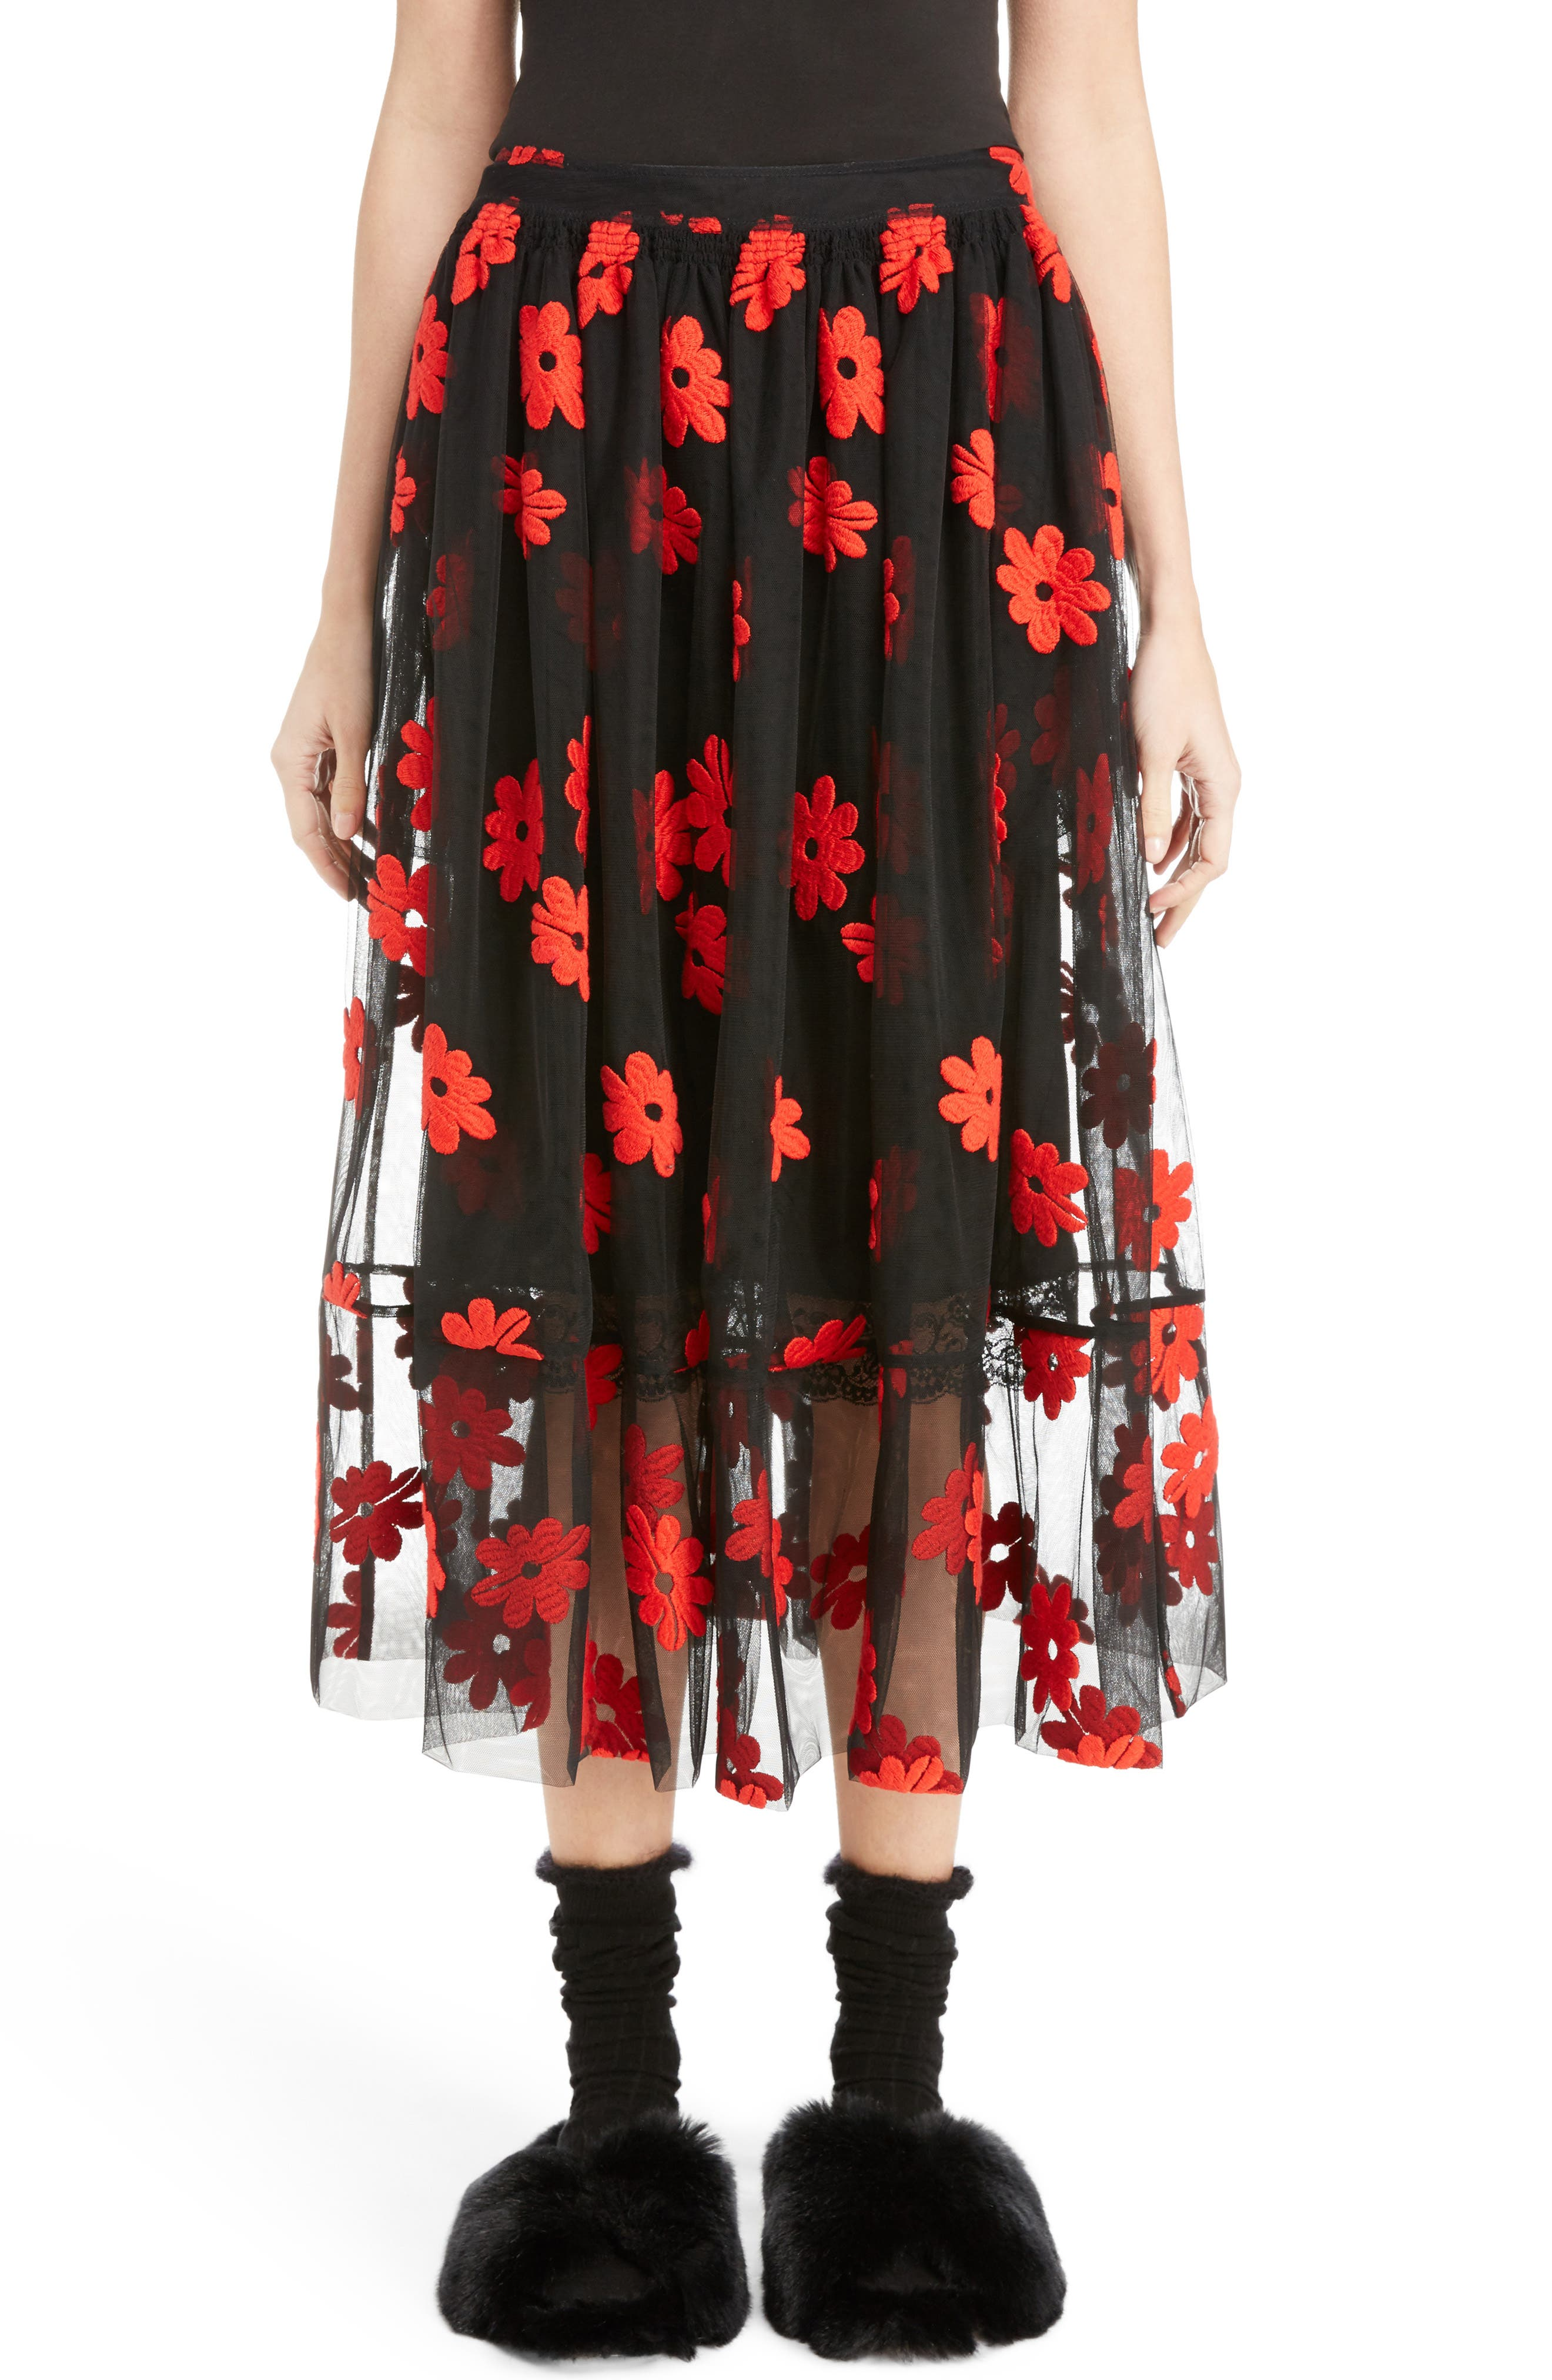 Simone Rocha Floral Embroidered Tulle Skirt